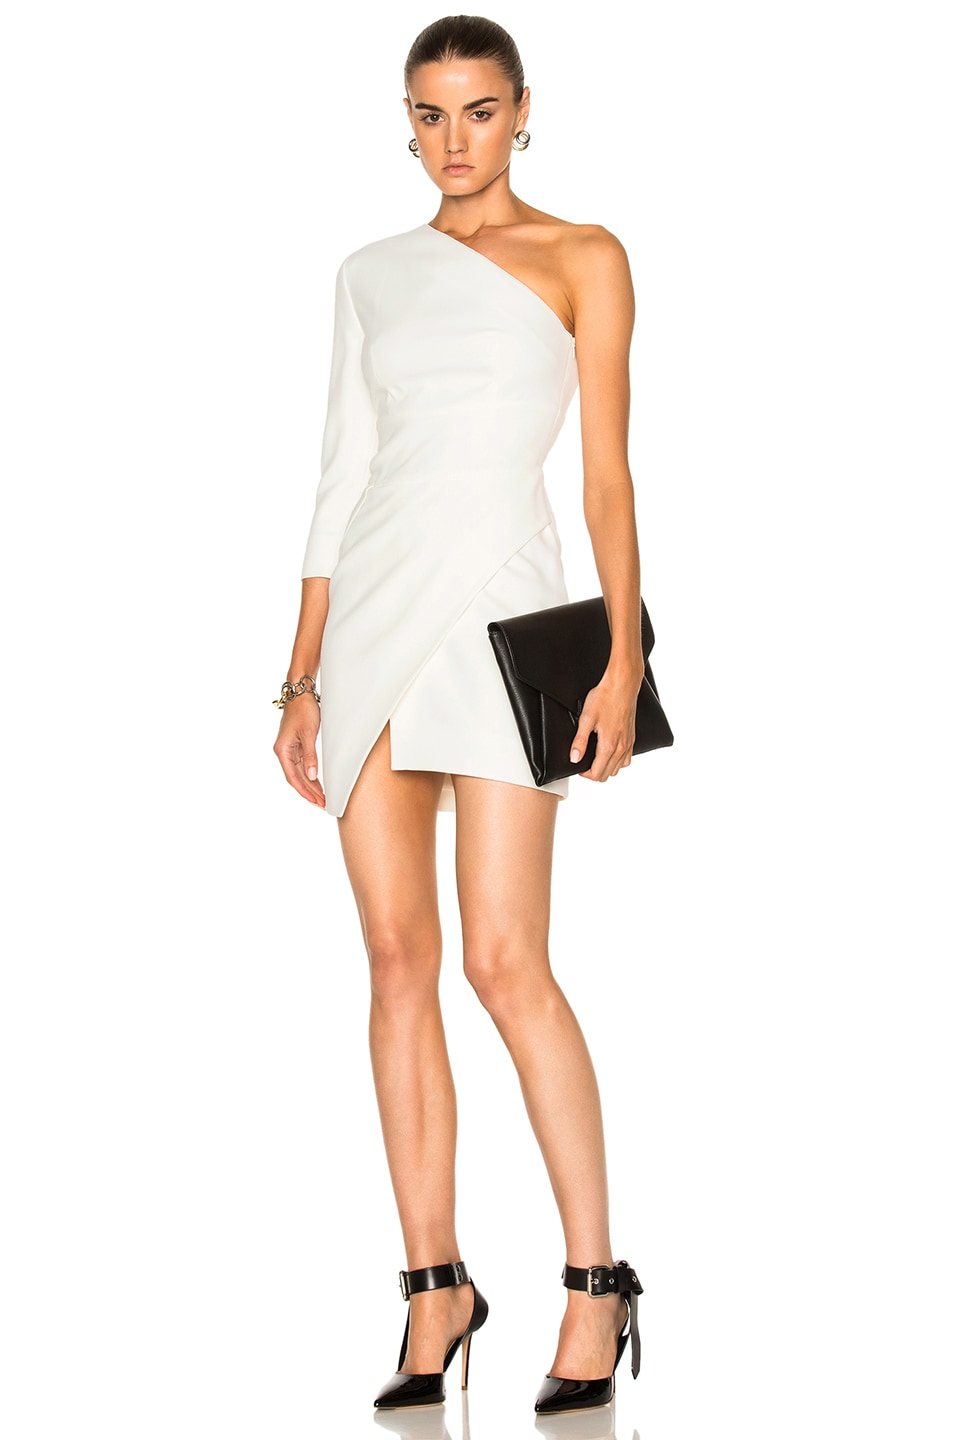 07115dd7c76b Image 1 of Alexandre Vauthier Cady One Shoulder Dress in Off White